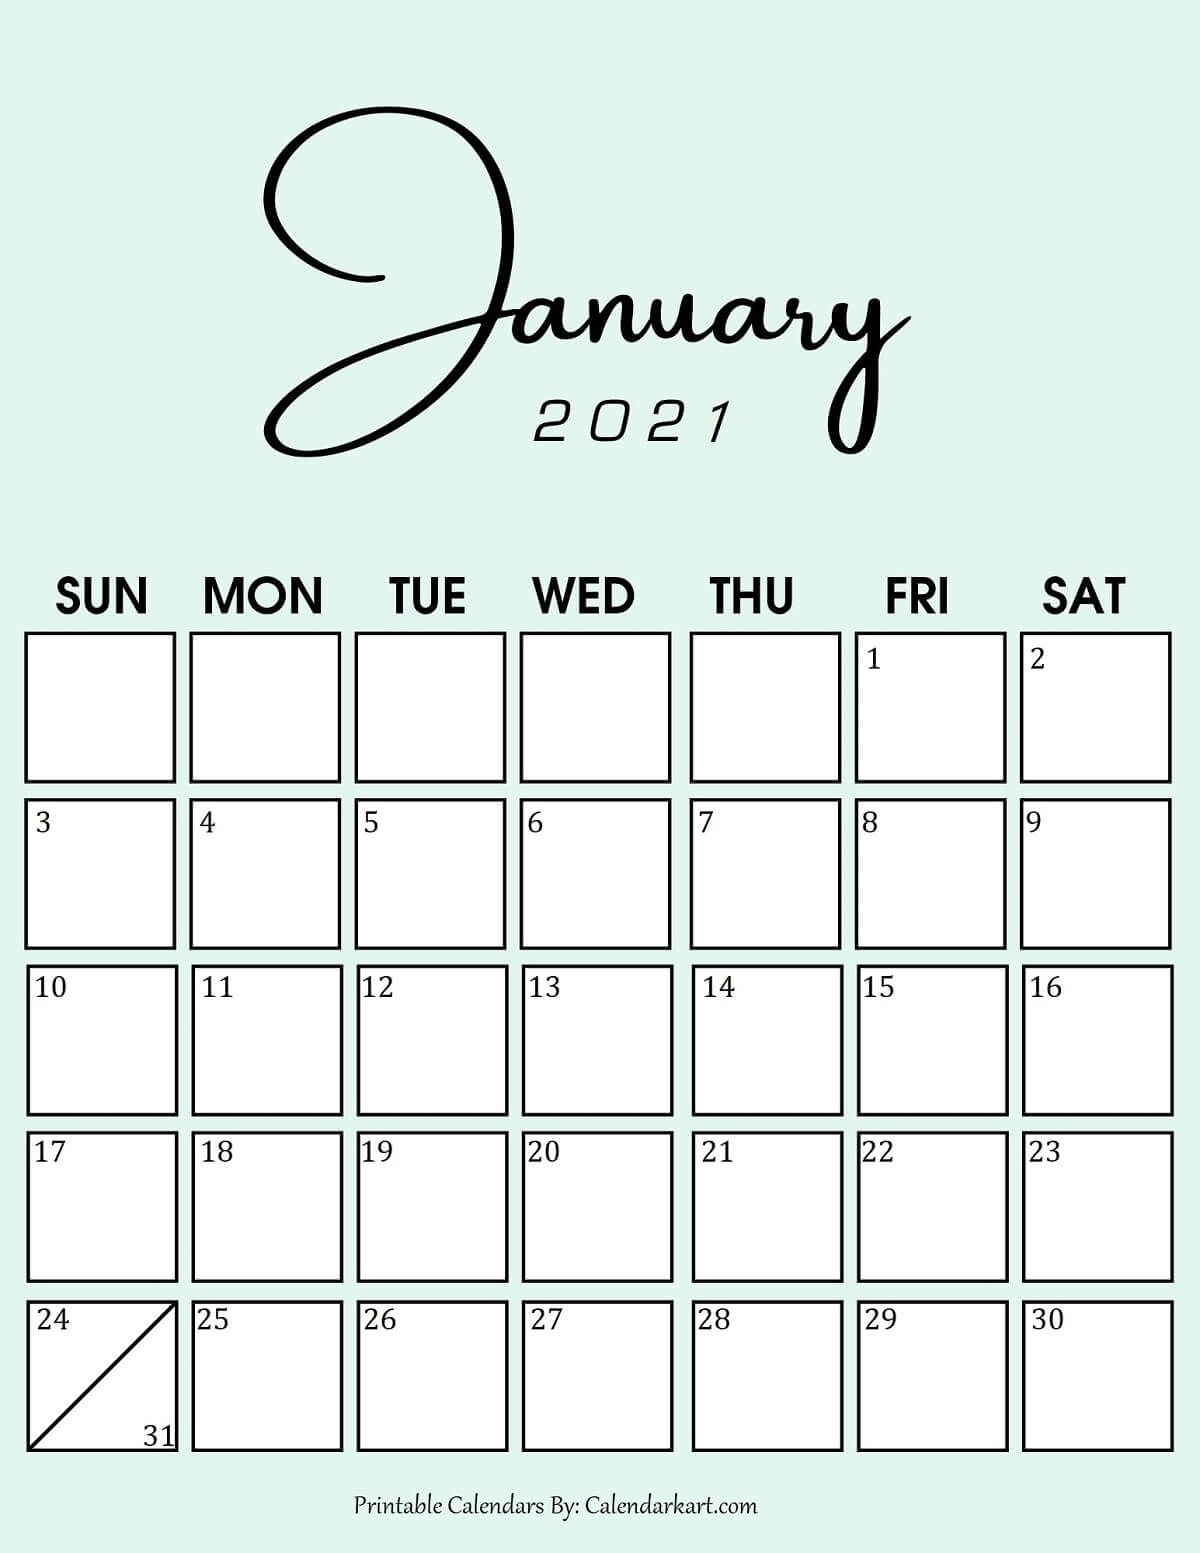 7 Cute And Stylish Free Printable January 2021 Calendar